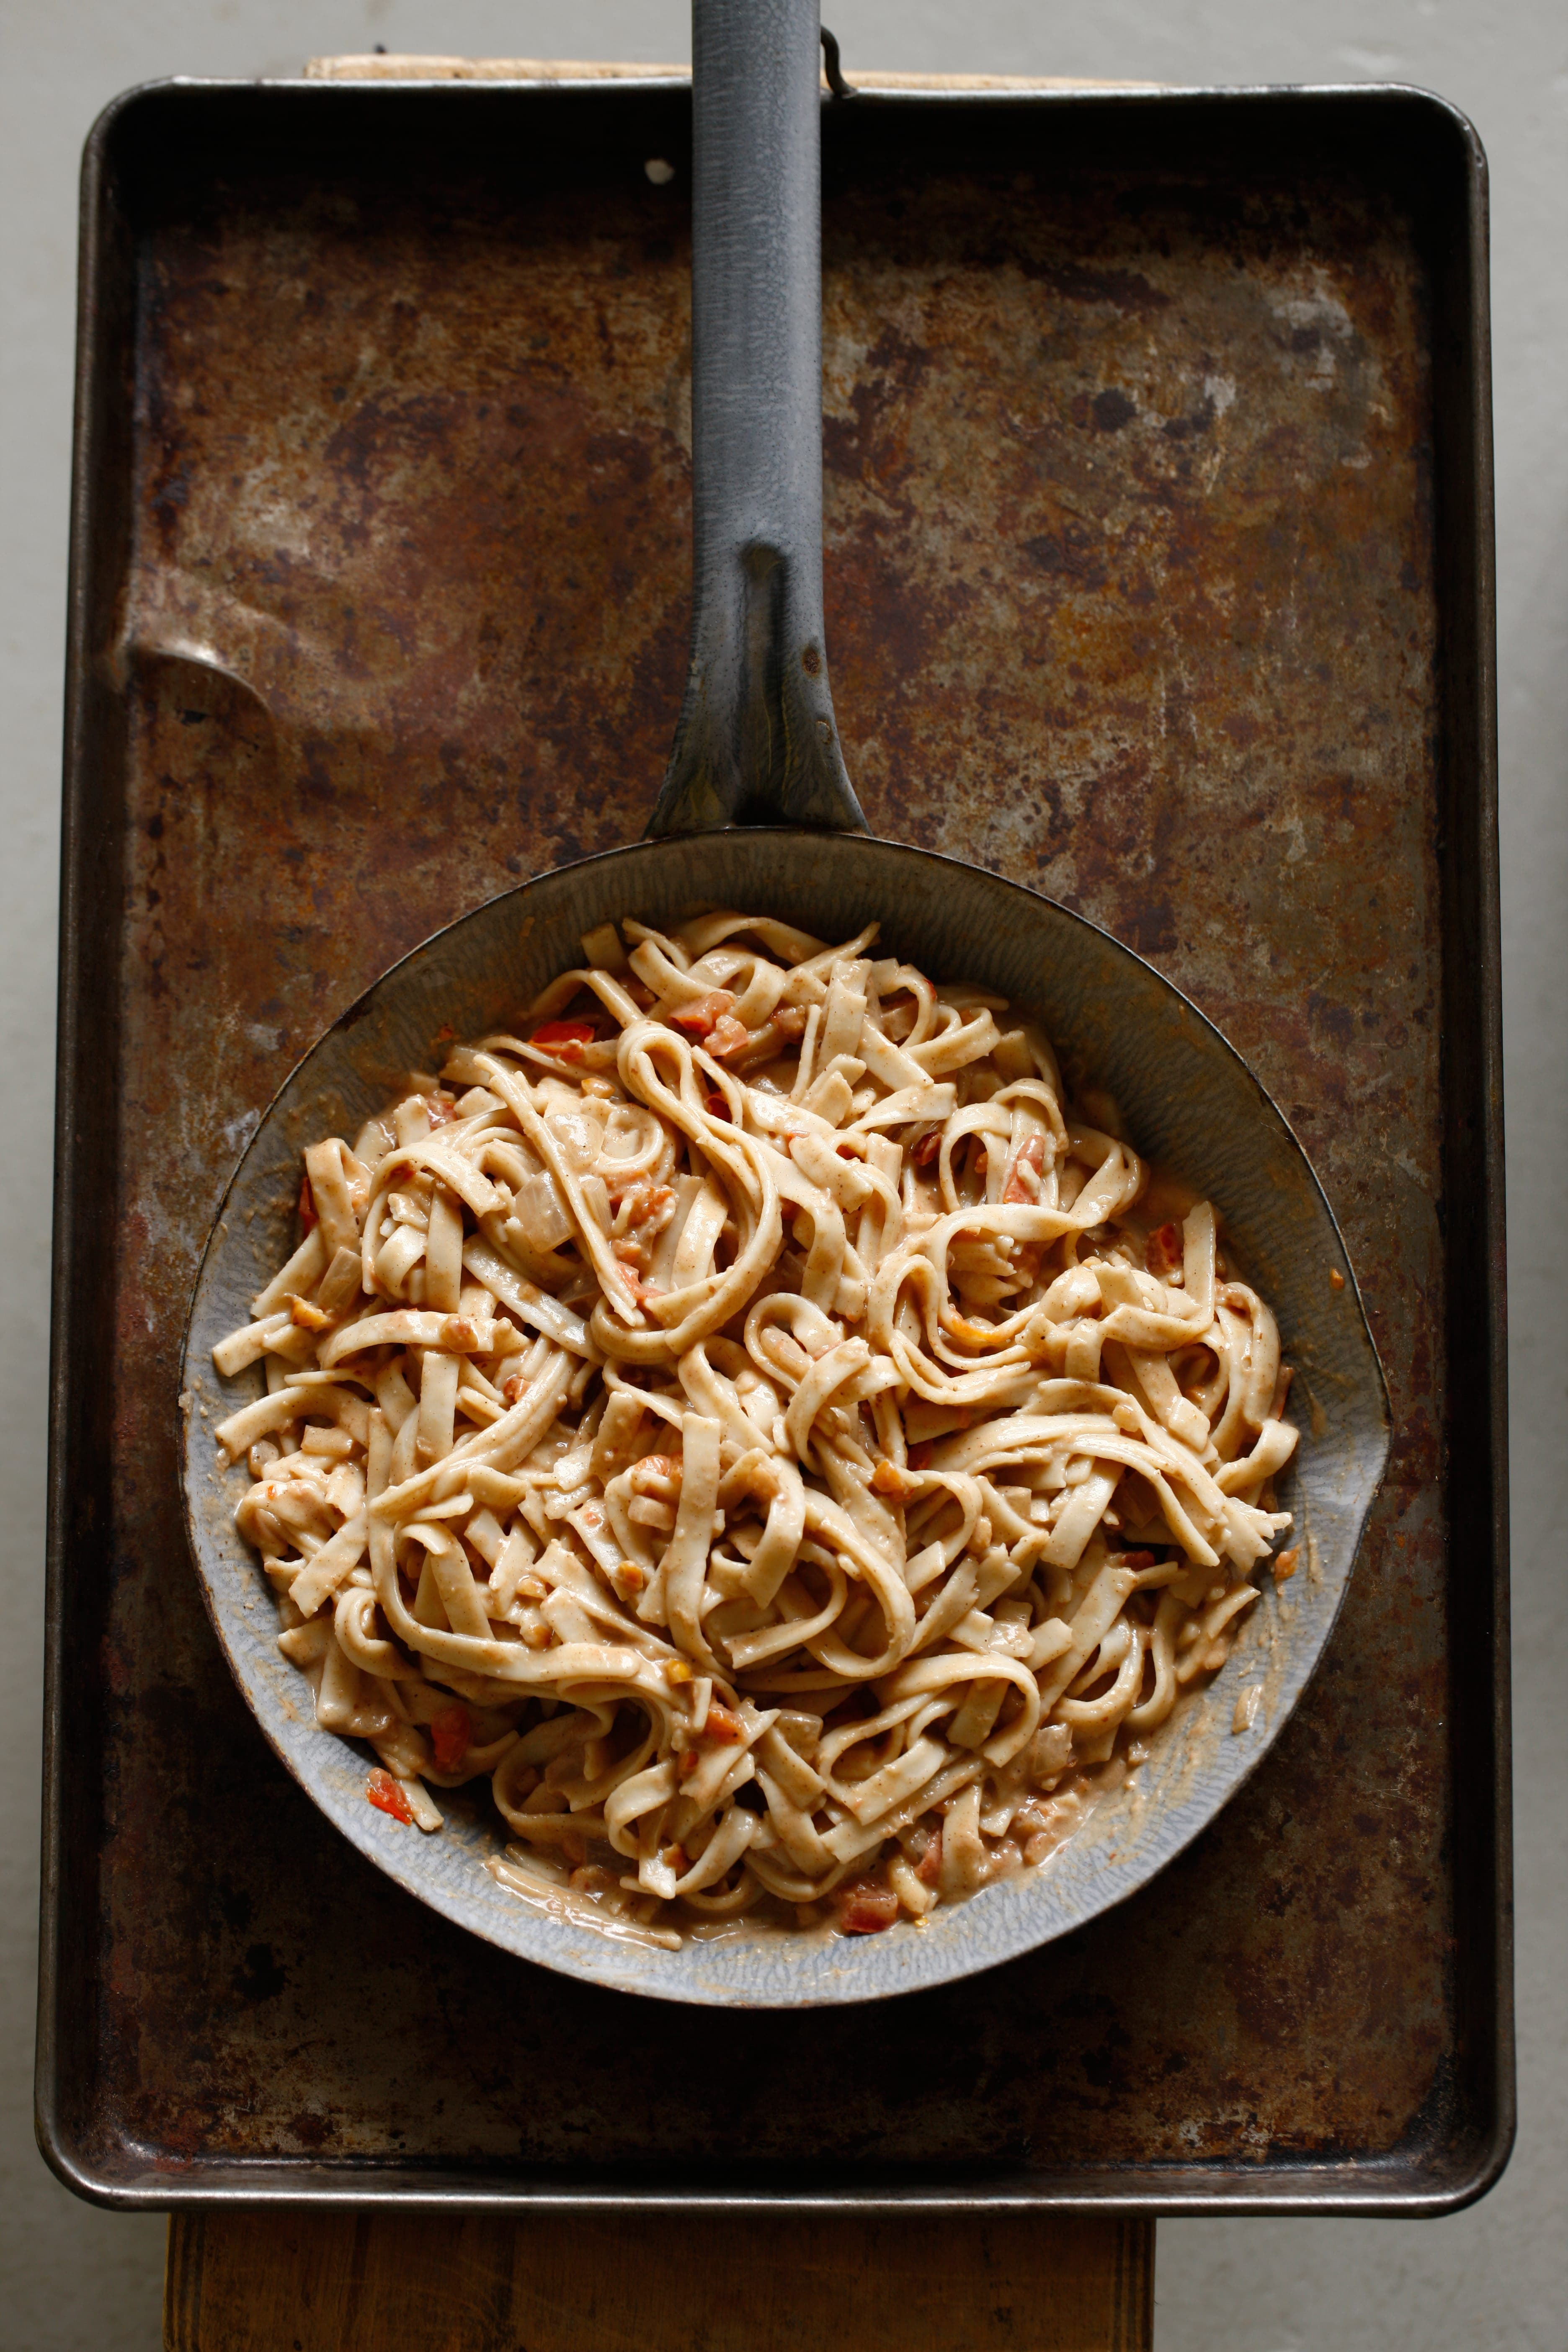 Spicy African Peanut Sauce and Noodles